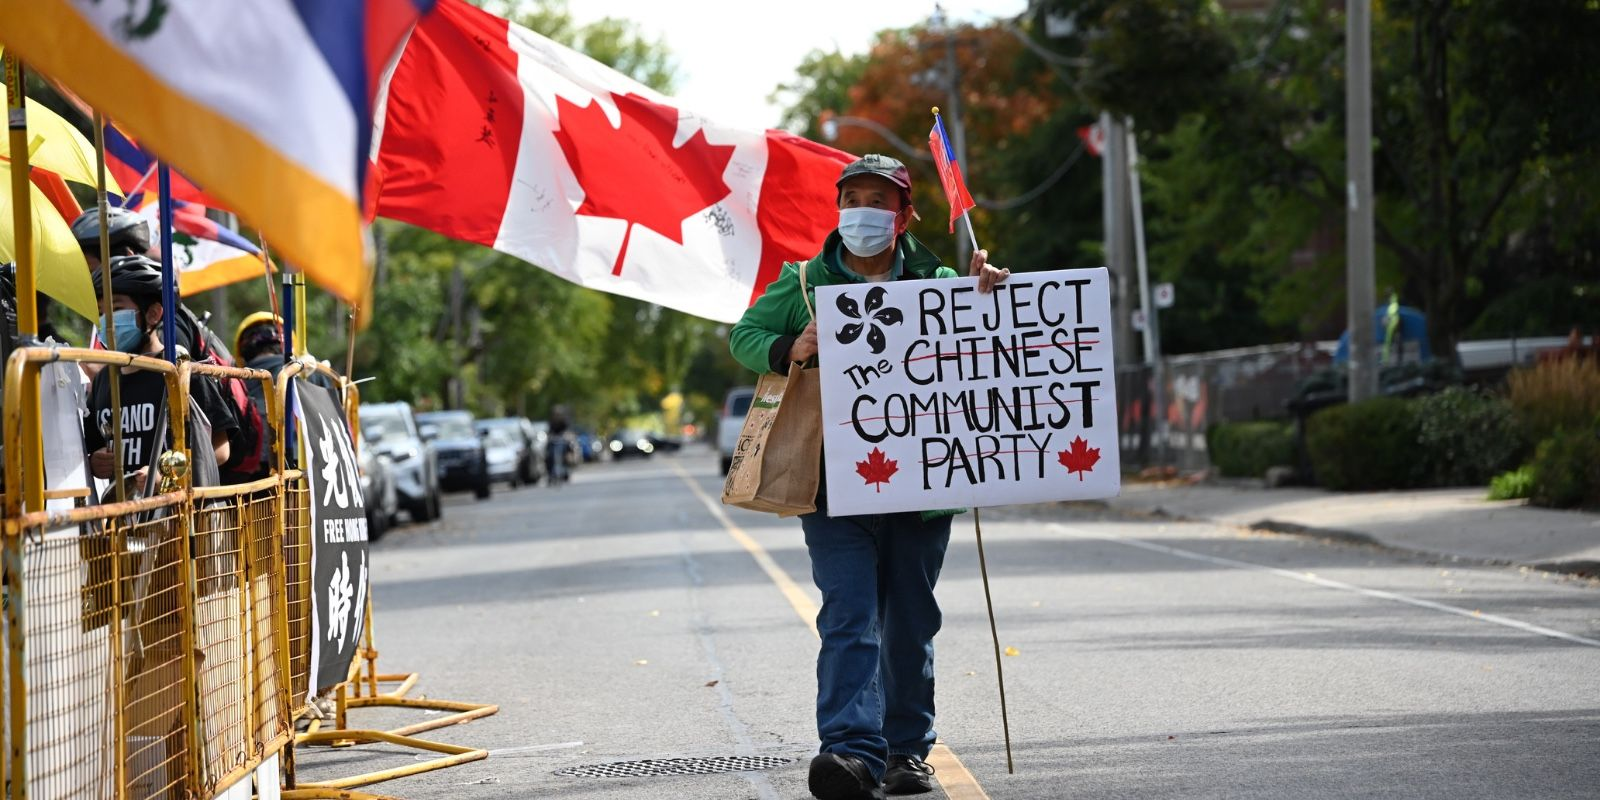 Protest staged in Toronto against China's human rights violations